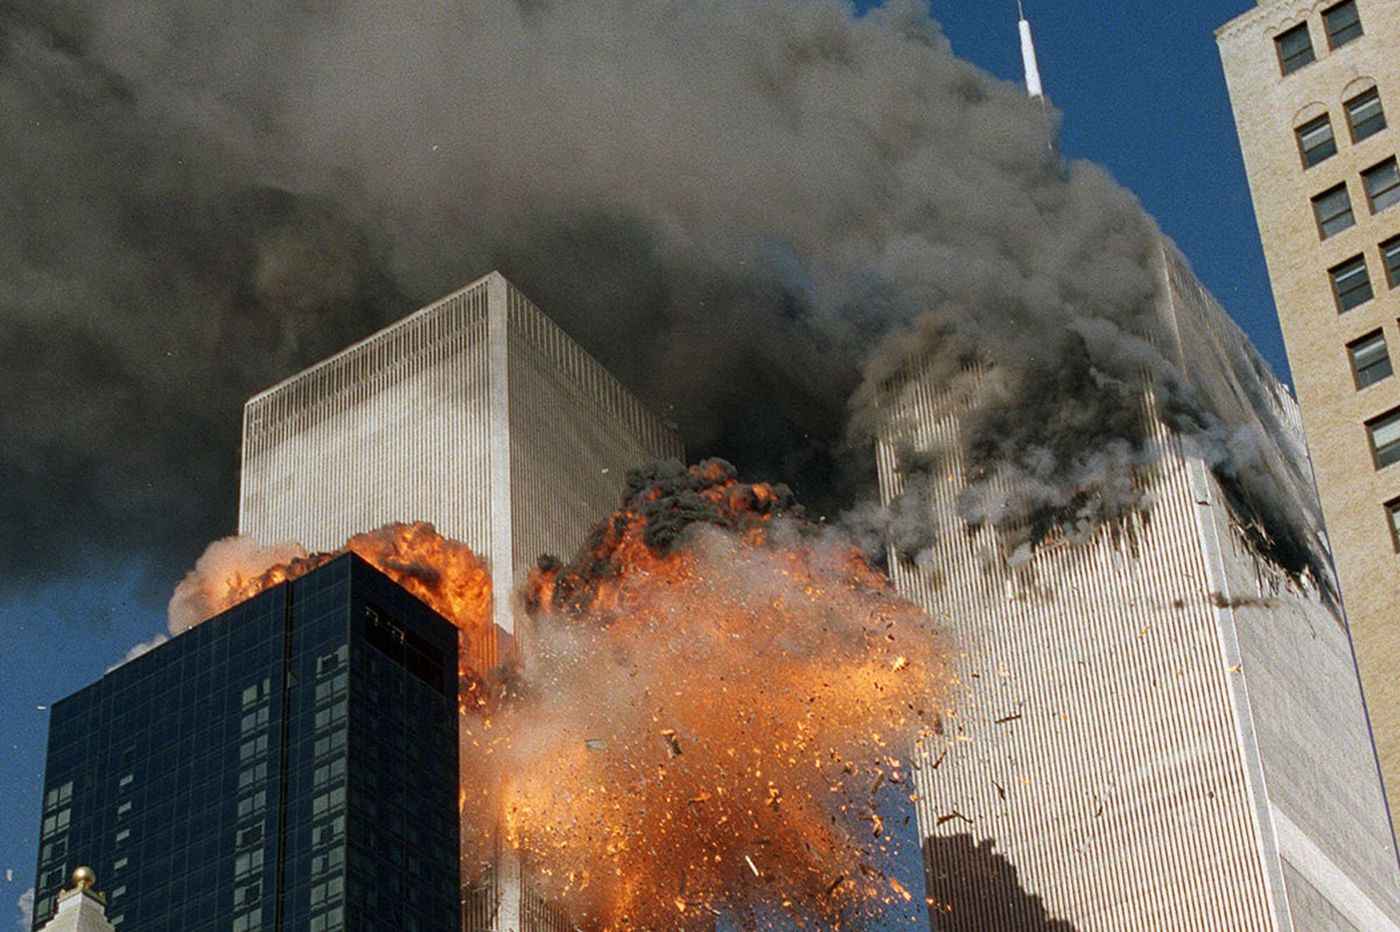 Archive: Anonymous villains and civilian targets add to 9/11 evil